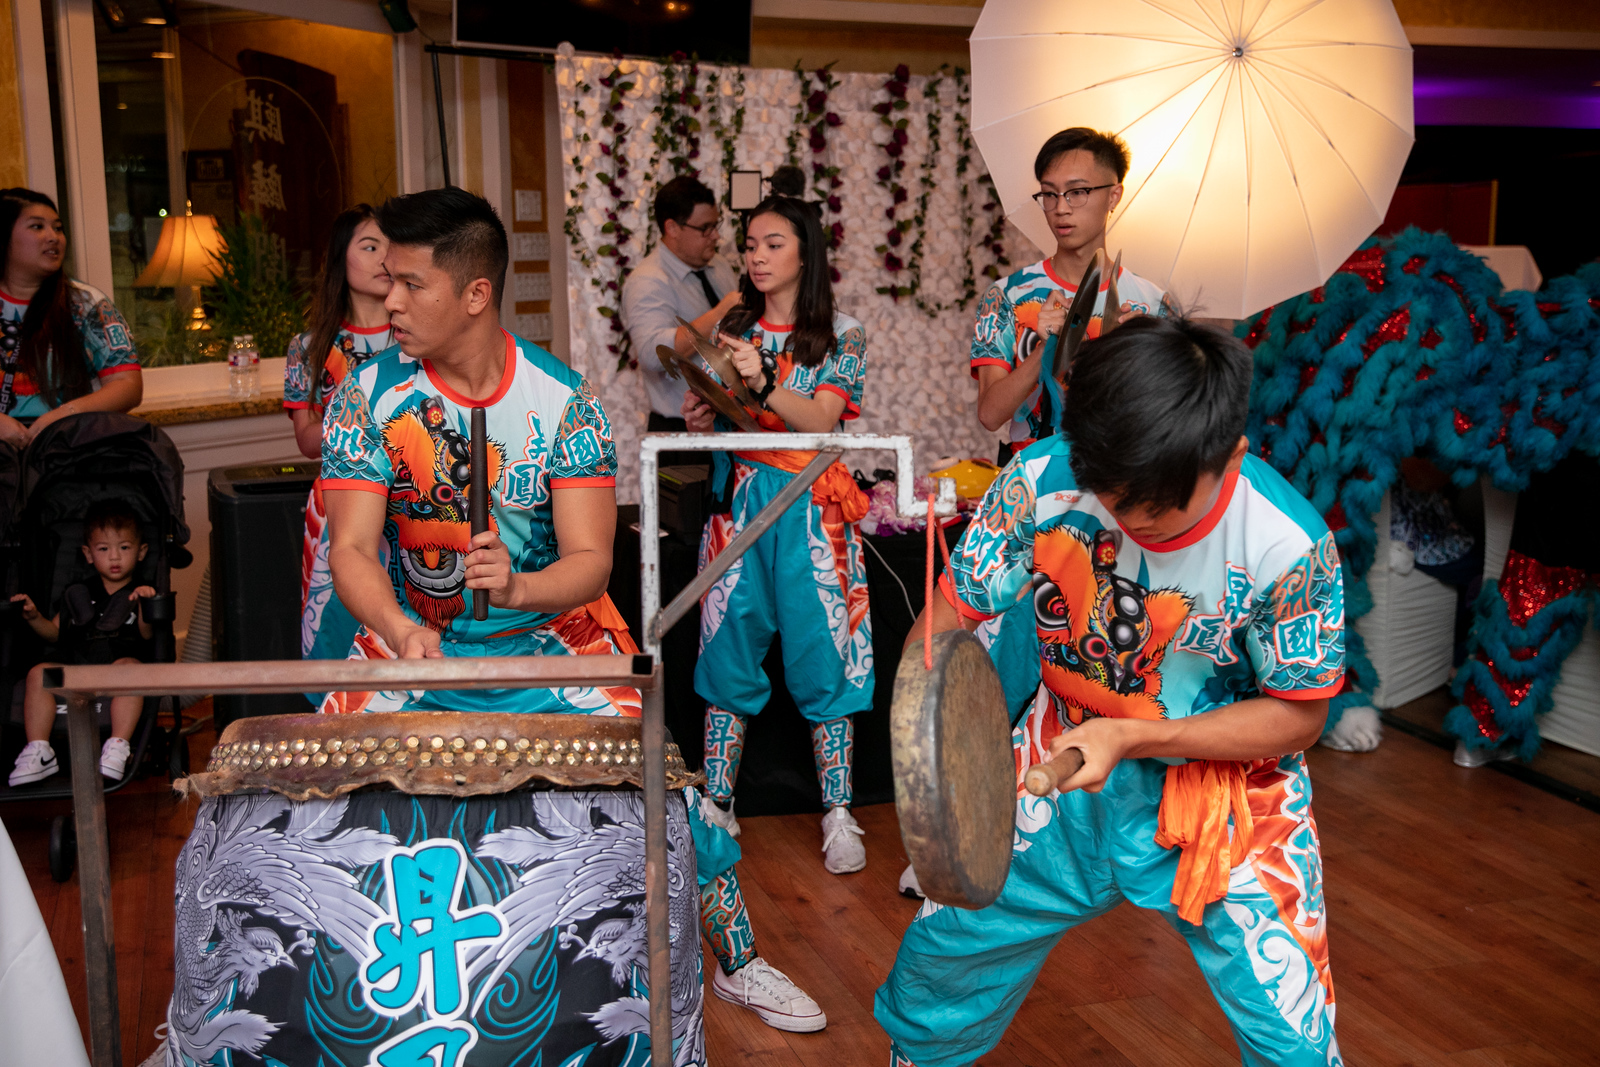 drummers at a wedding